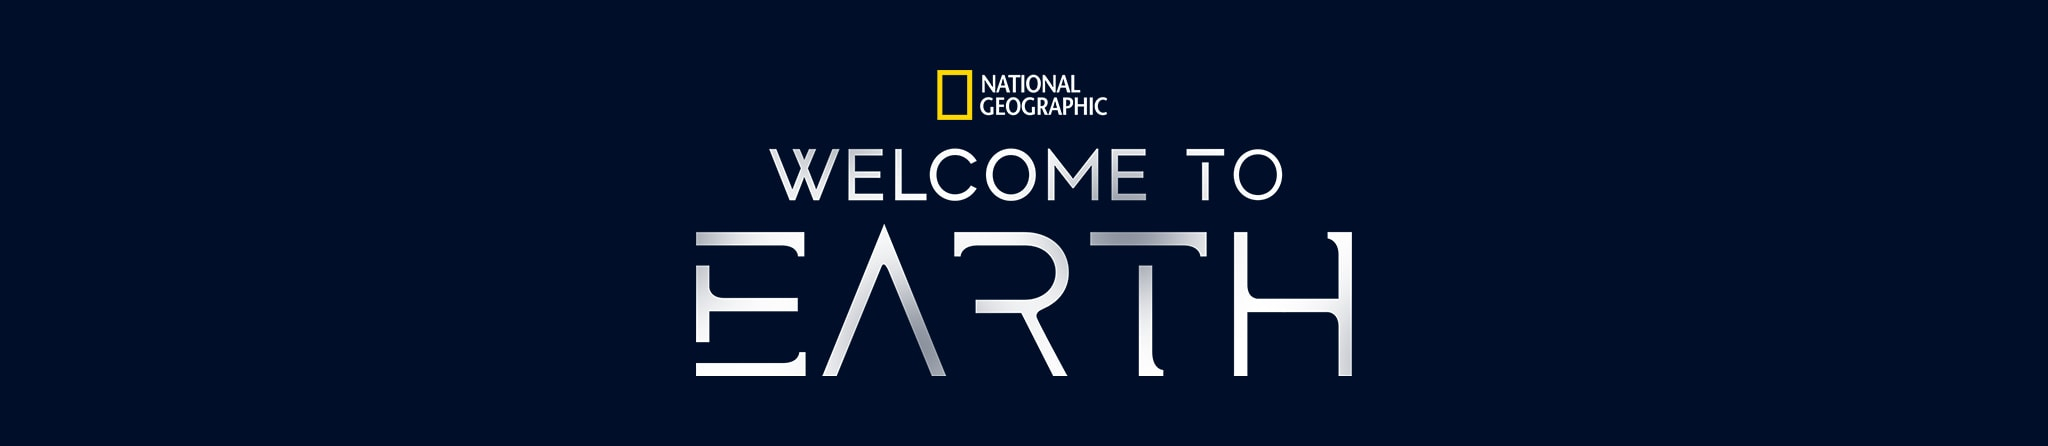 National Geographic | Welcome to Earth